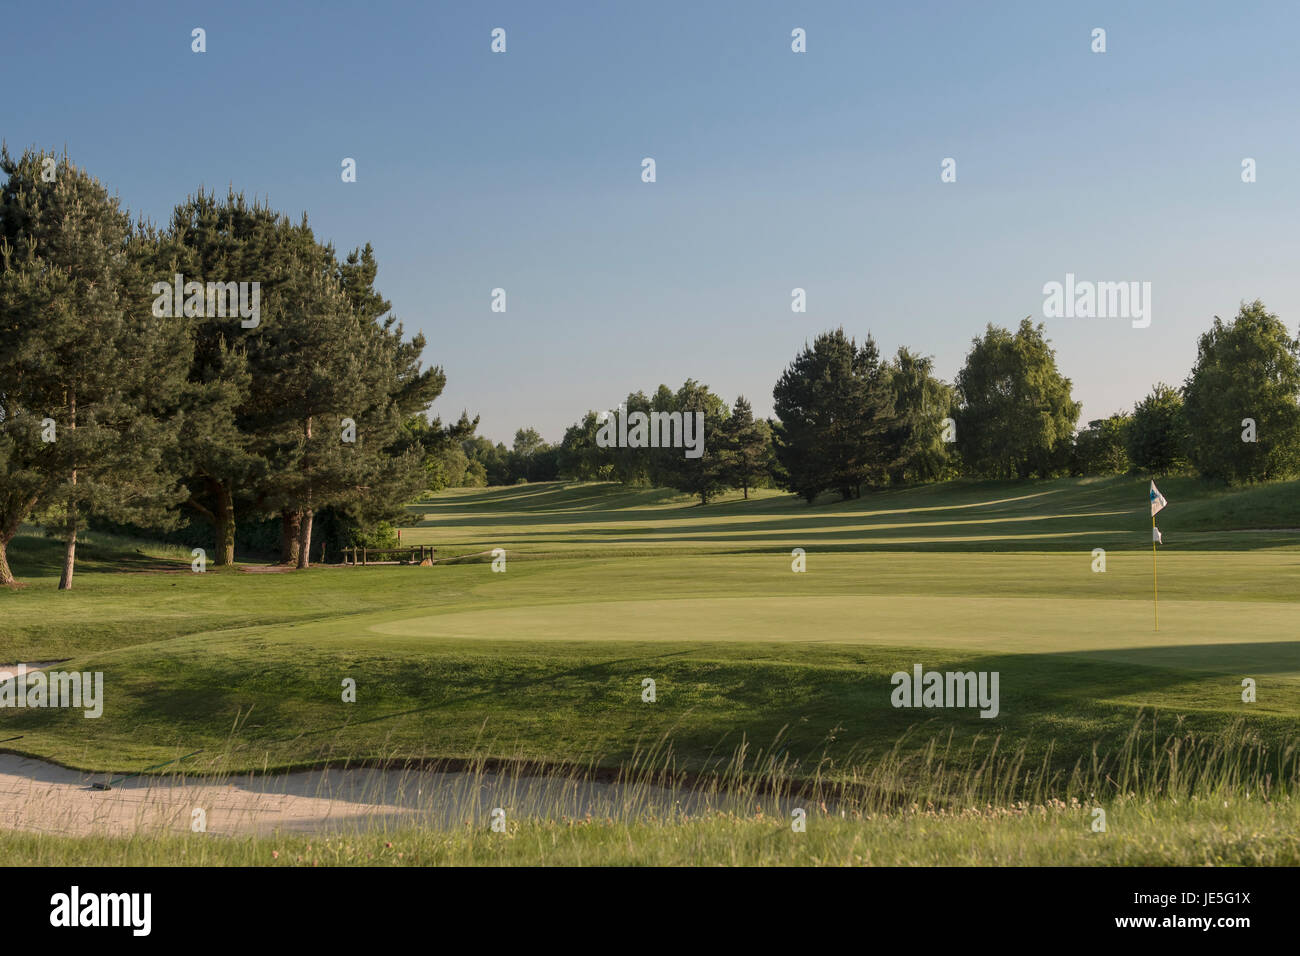 Golf course in England - Stock Image